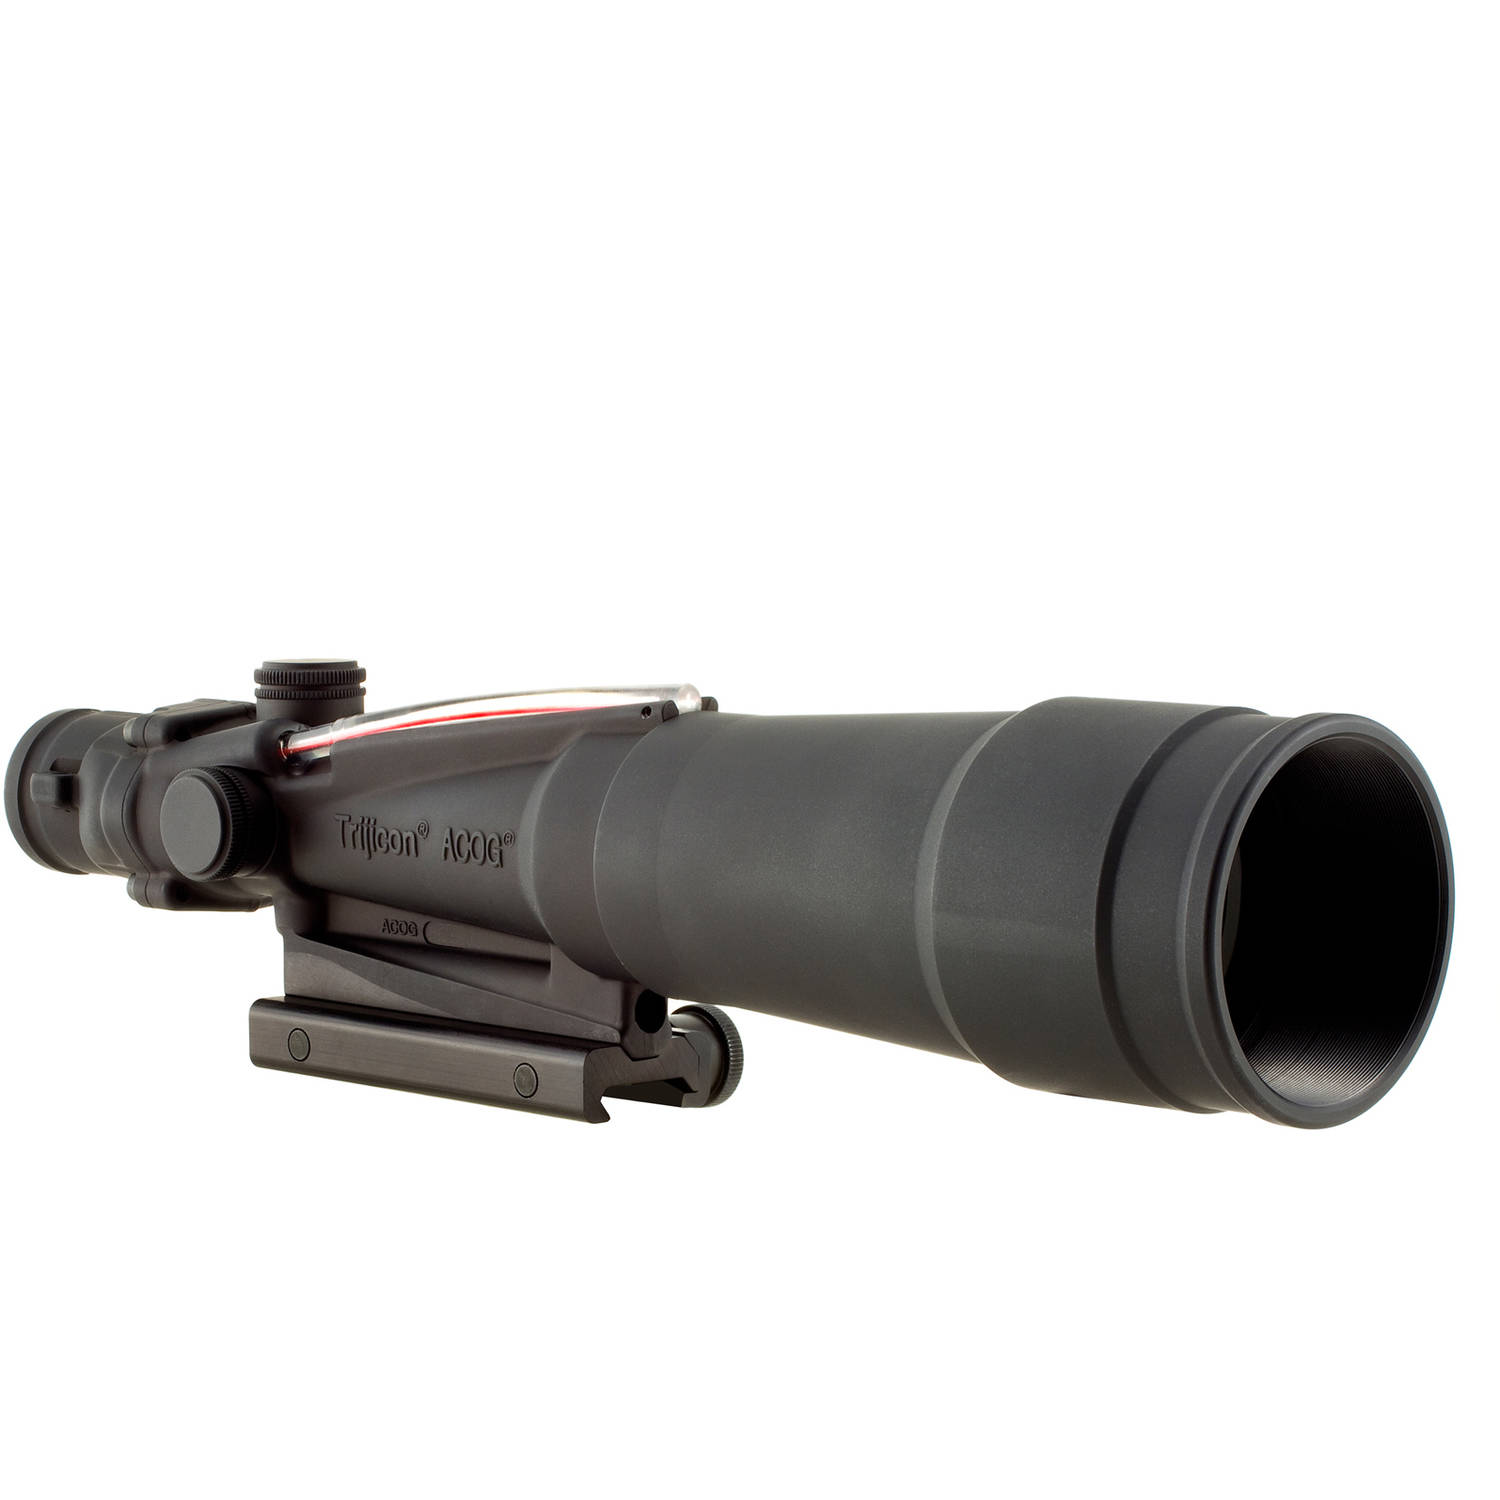 Click here to buy Trijicon ACOG Rifle Scope, 5.5X50, Red Chevron Reticle .308, Includes Flattop Adapter, Matte by Trijicon.